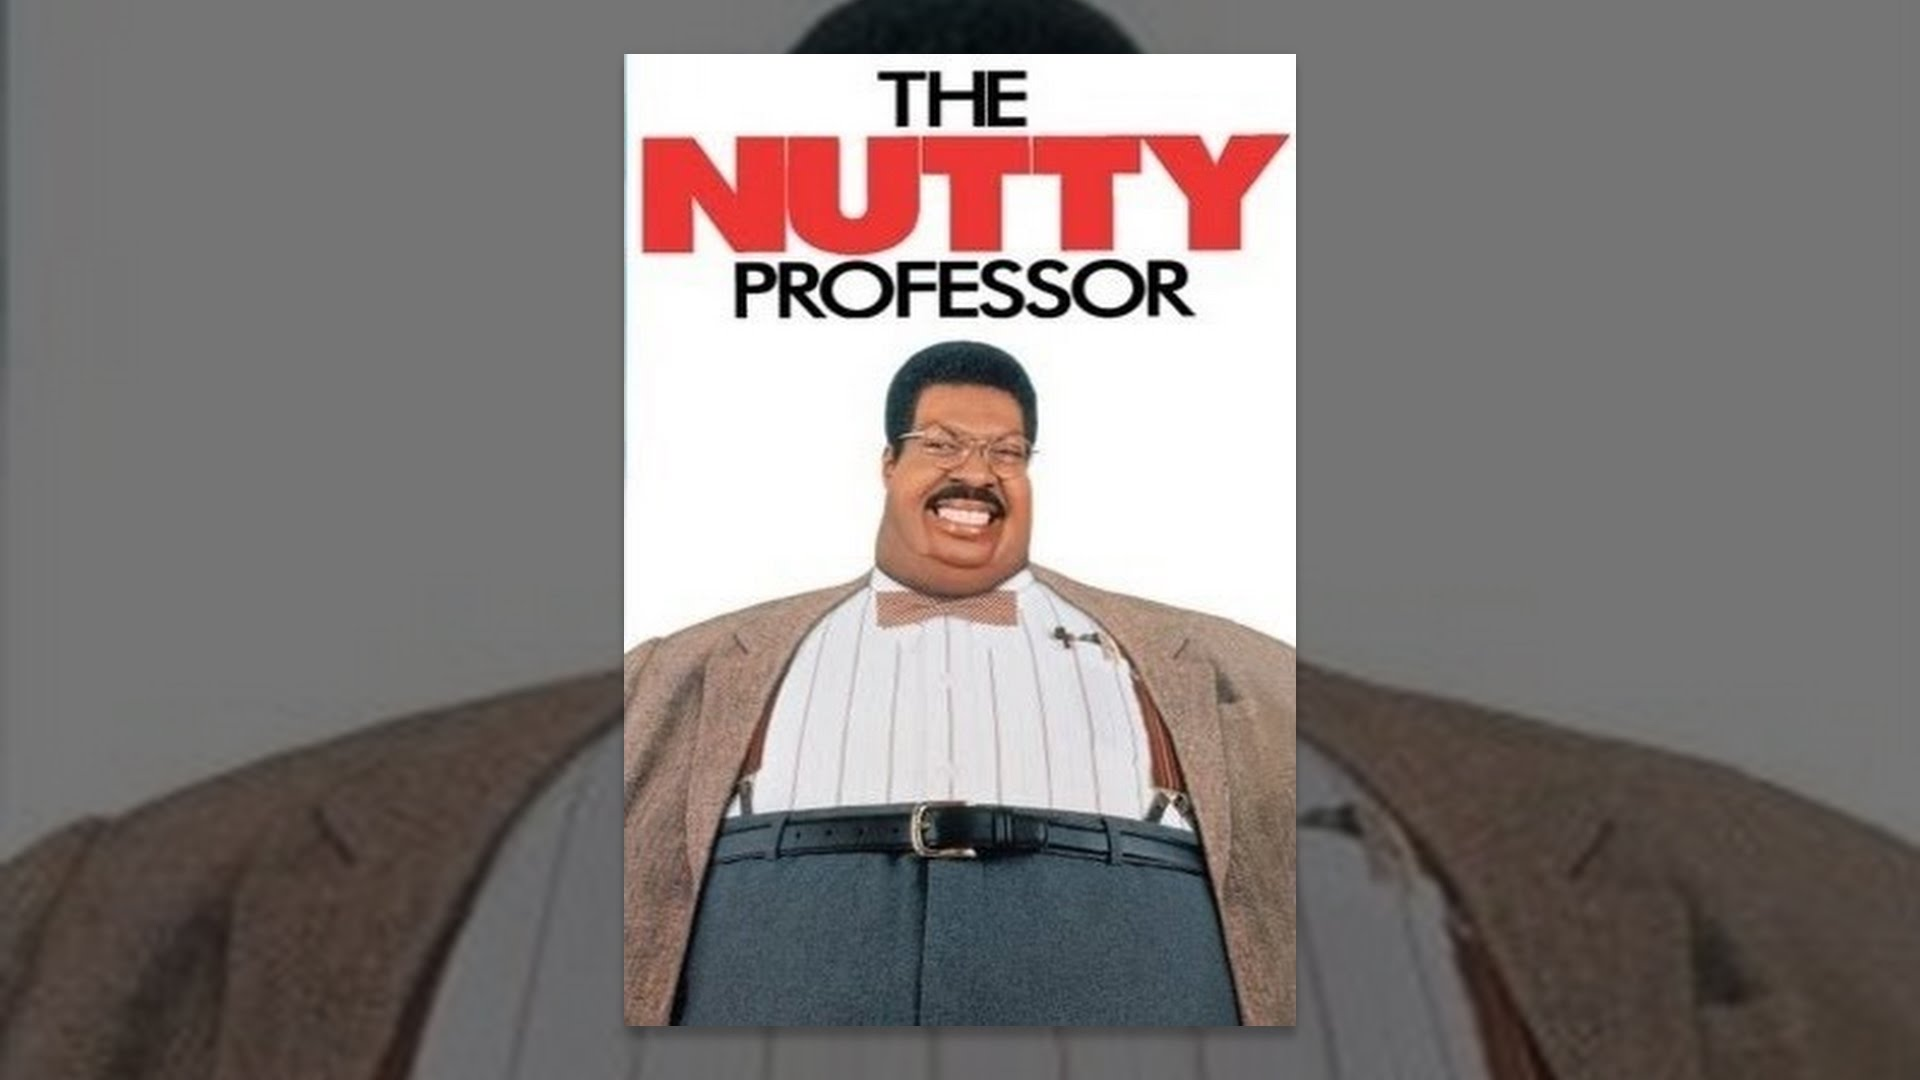 iTunes - Movies - The Nutty Professor (1996)